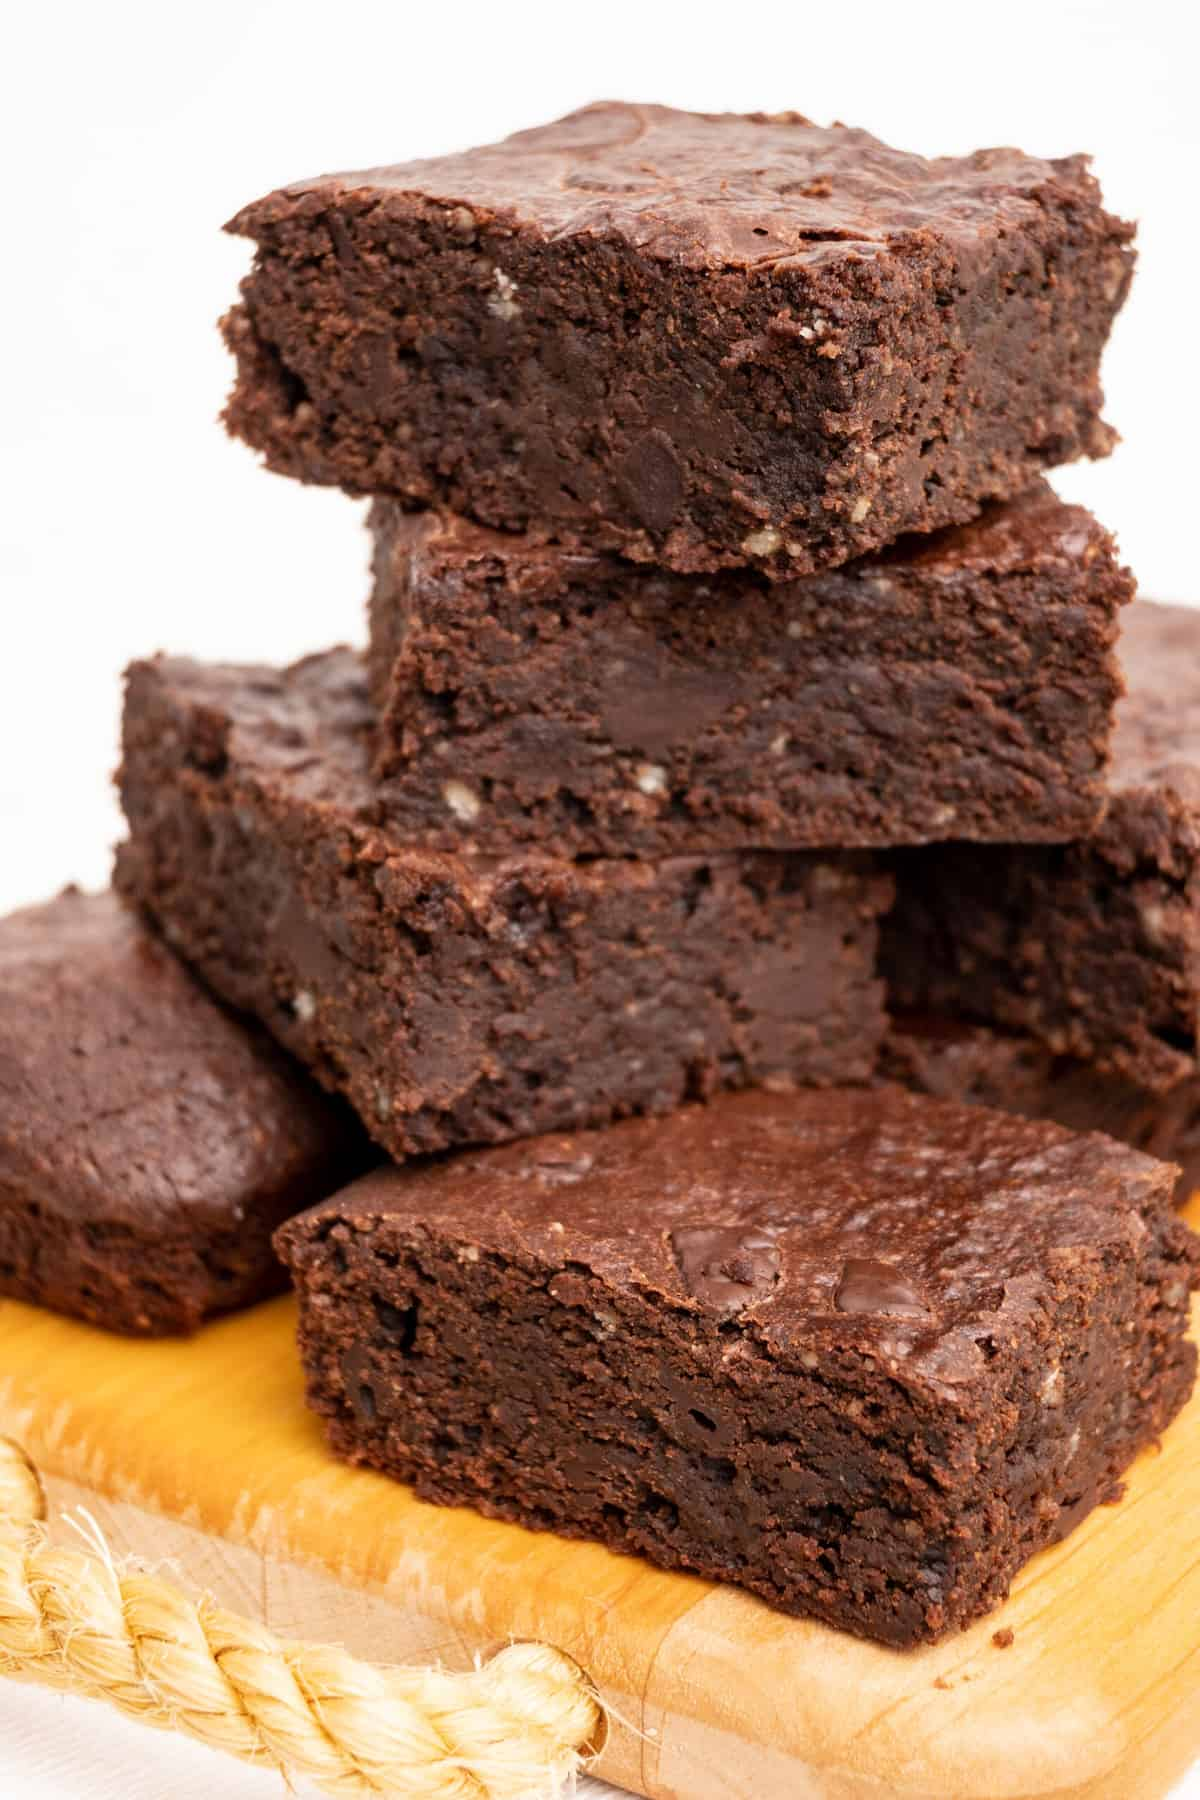 A stack of homemade vegan brownies ready to be eaten.